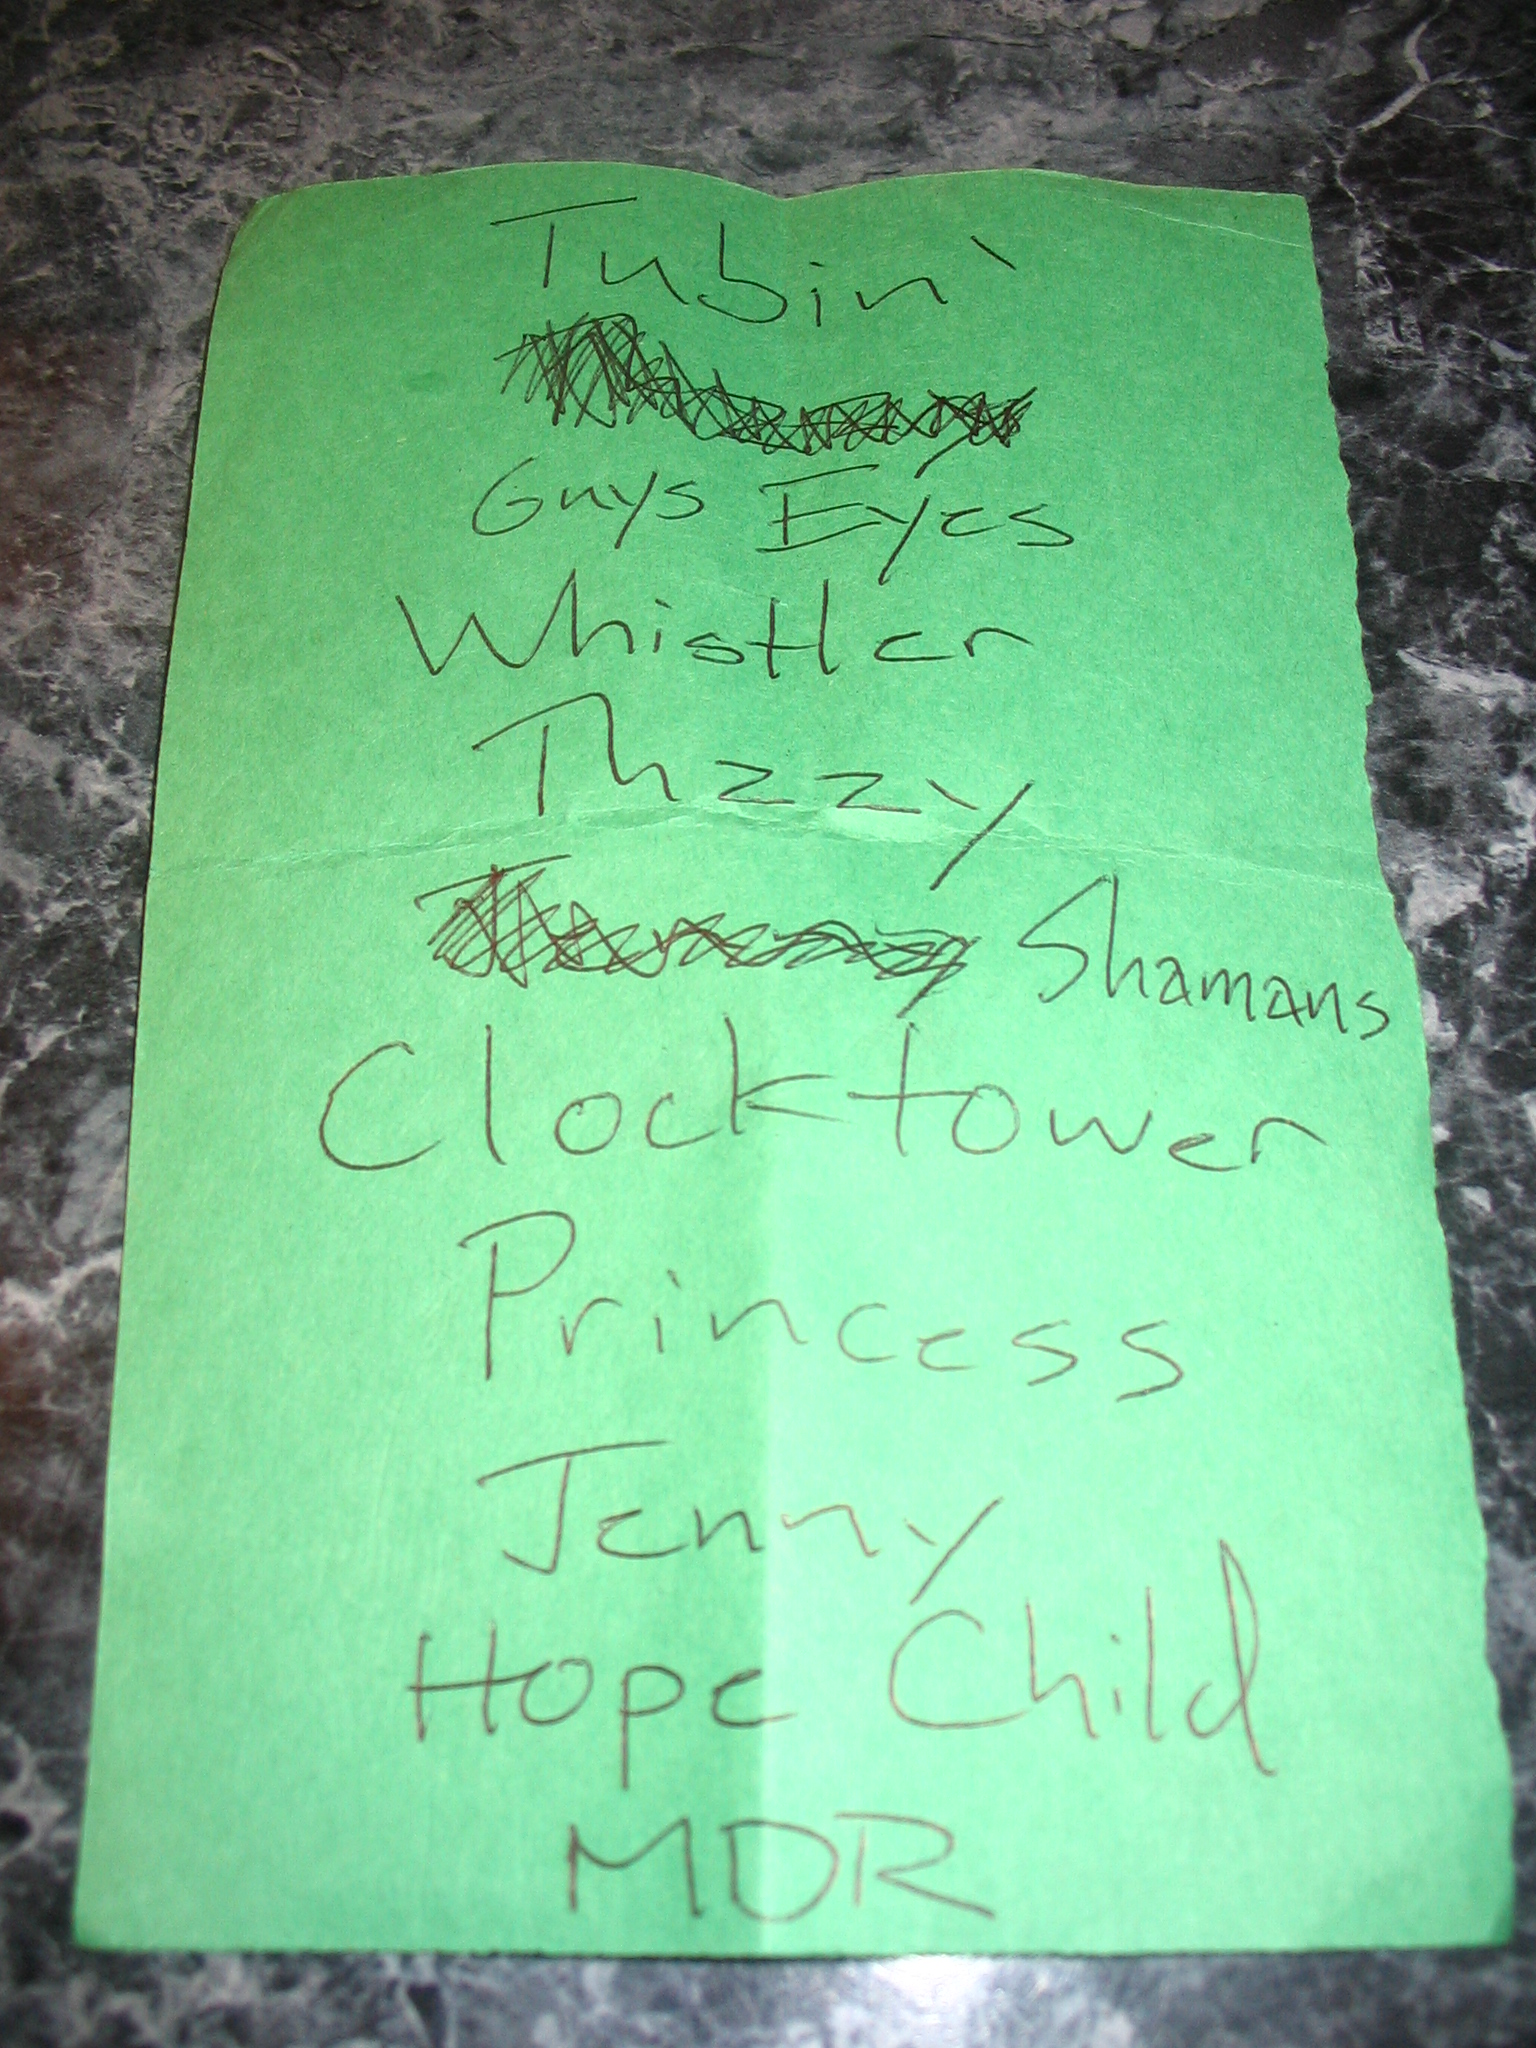 Hockey Night live @ Triple Rock 4/22/06 - Setlist